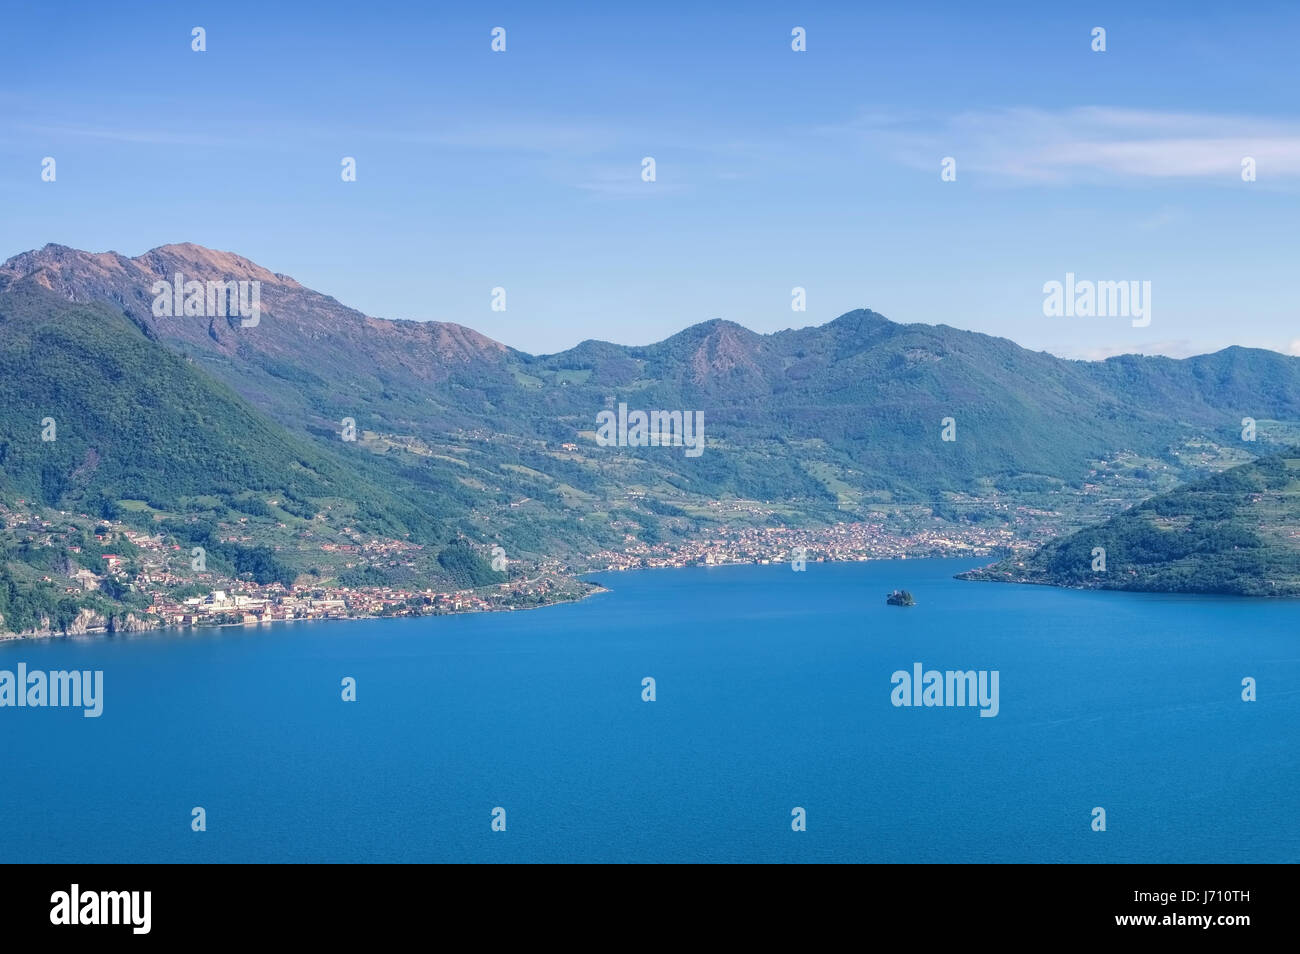 Iseo lake in Alps, Lombardy in northern Italy - Stock Image